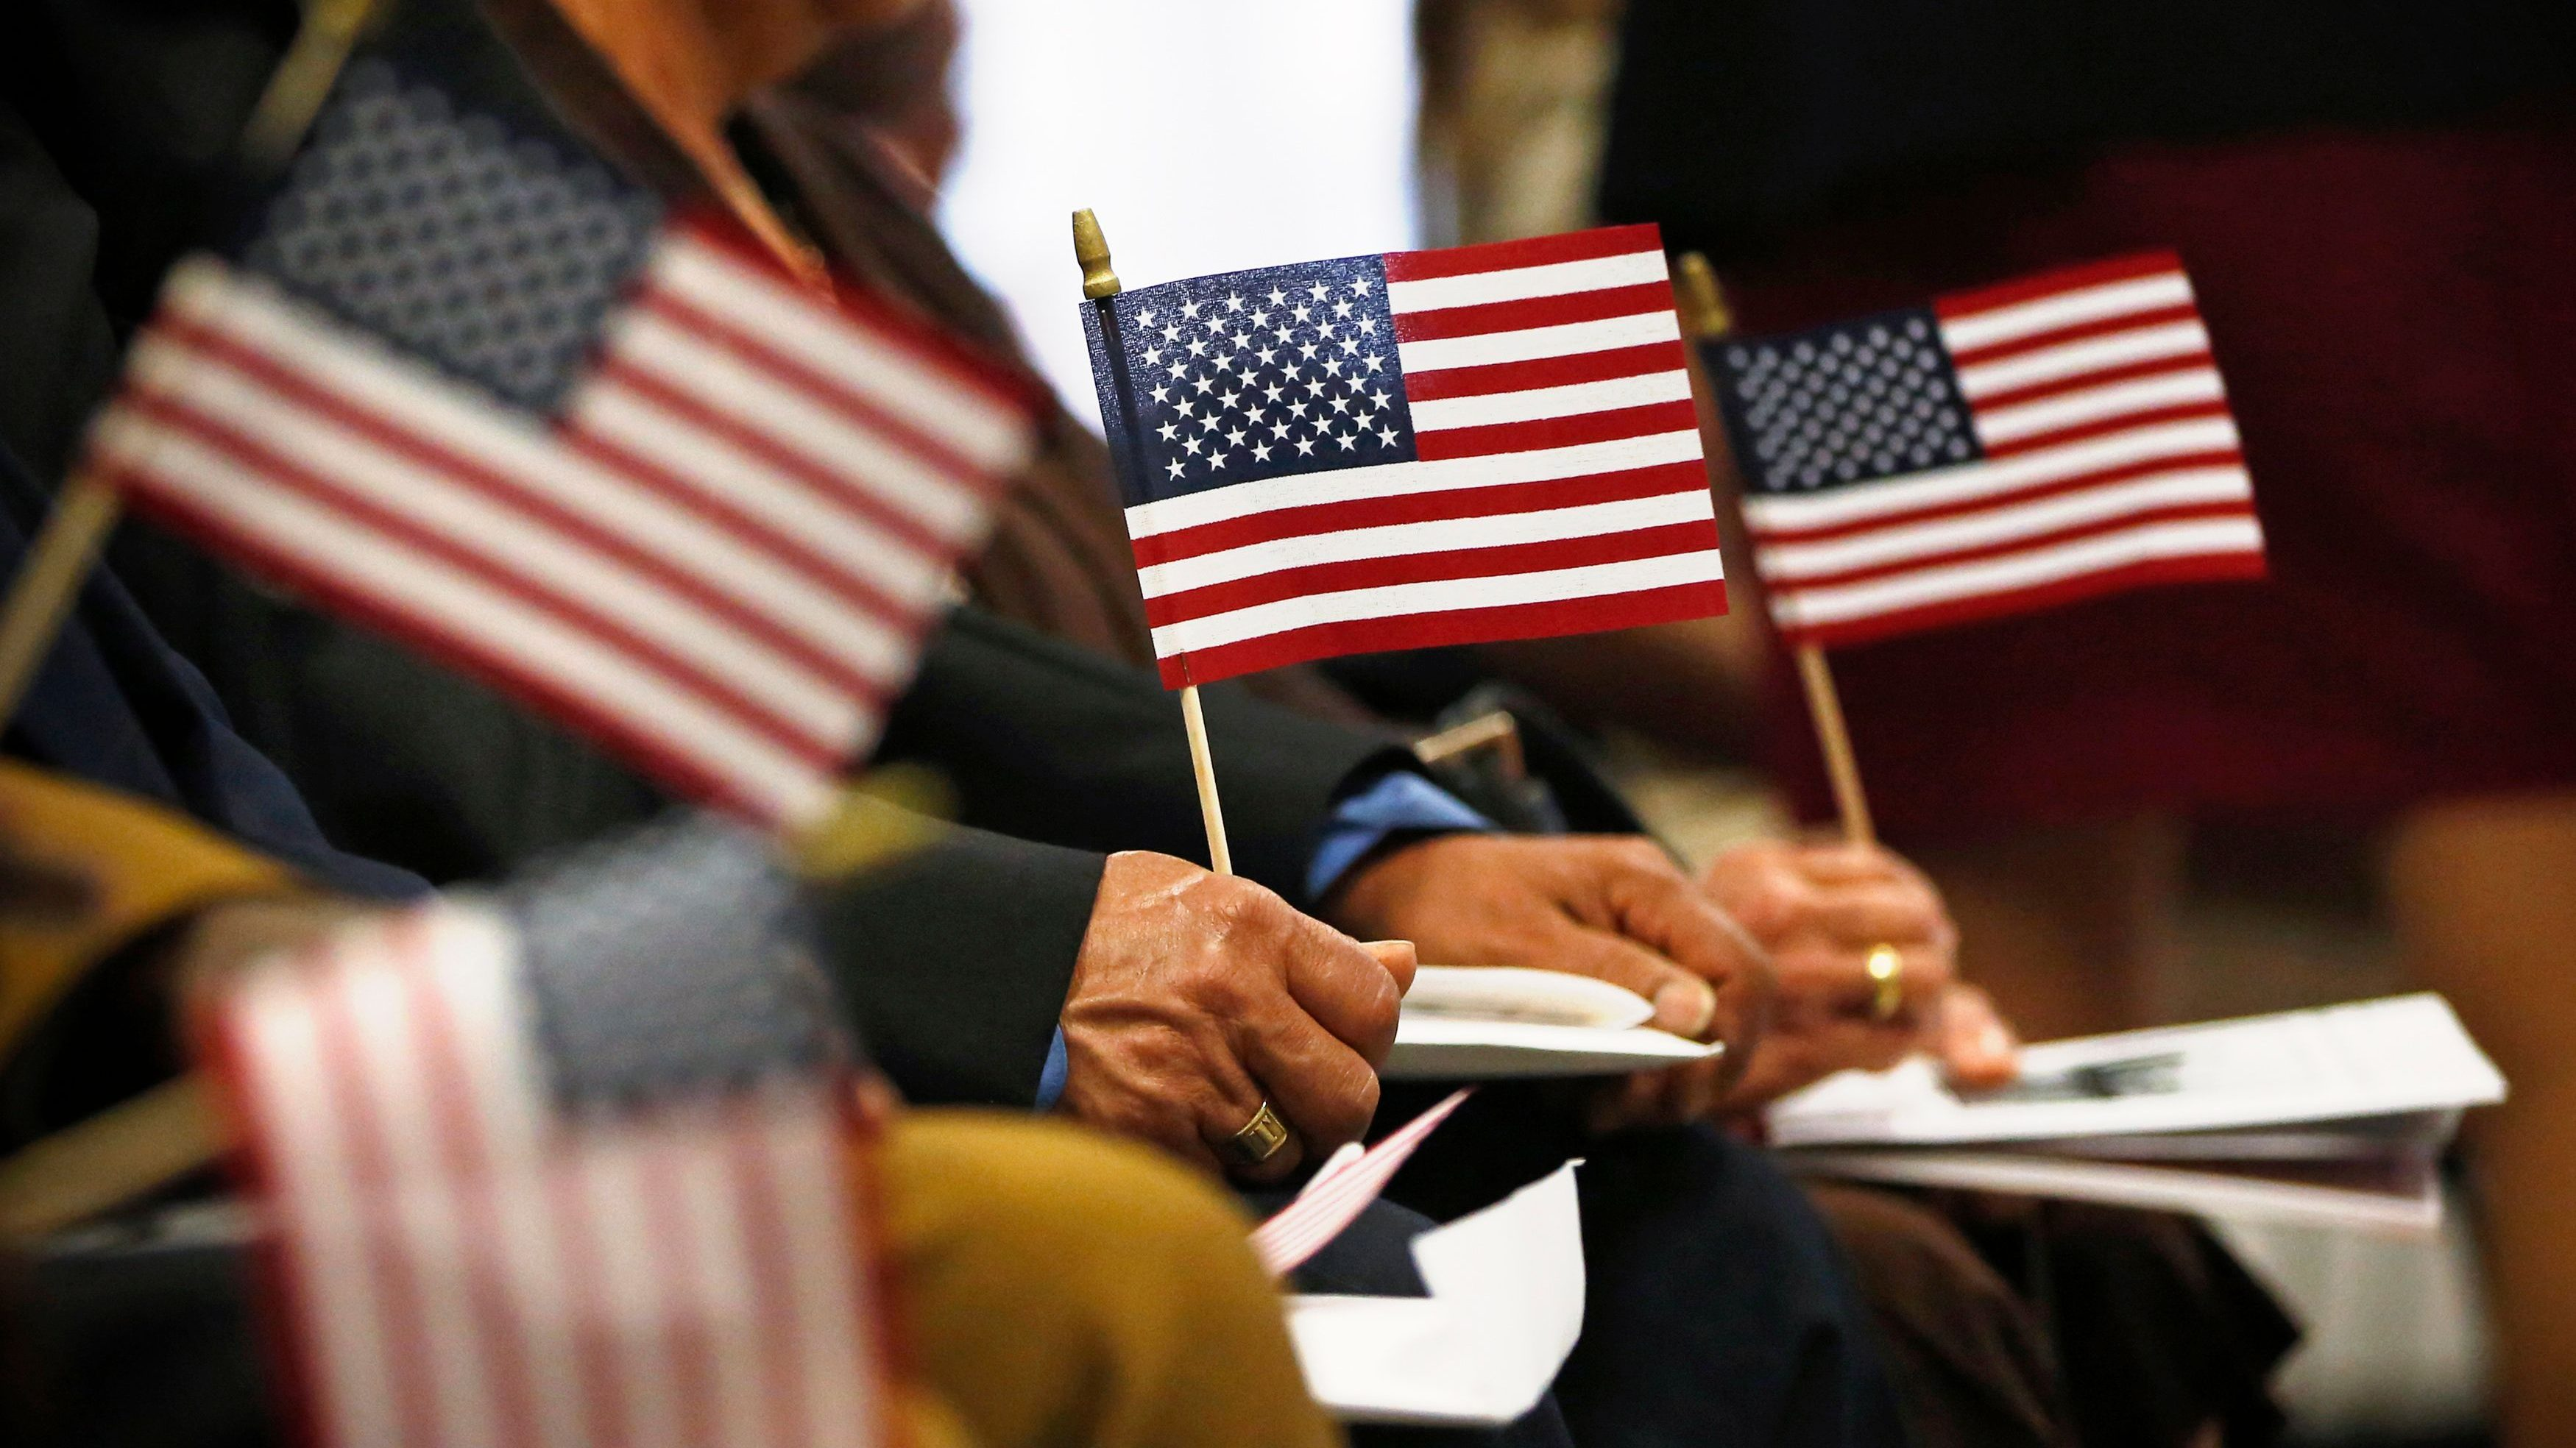 """Immigrants hold U.S. flags during their naturalization ceremony to become new citizens of the U.S. in New York, April 17, 2013. President Barack Obama on Tuesday embraced a sweeping overhaul of the nation's immigration system put forward by a bipartisan group of senators, saying it was """"largely consistent"""" with his own principles for immigration reform. REUTERS/Brendan McDermid (UNITED STATES  - Tags: SOCIETY IMMIGRATION POLITICS) - GM1E94I09A801"""